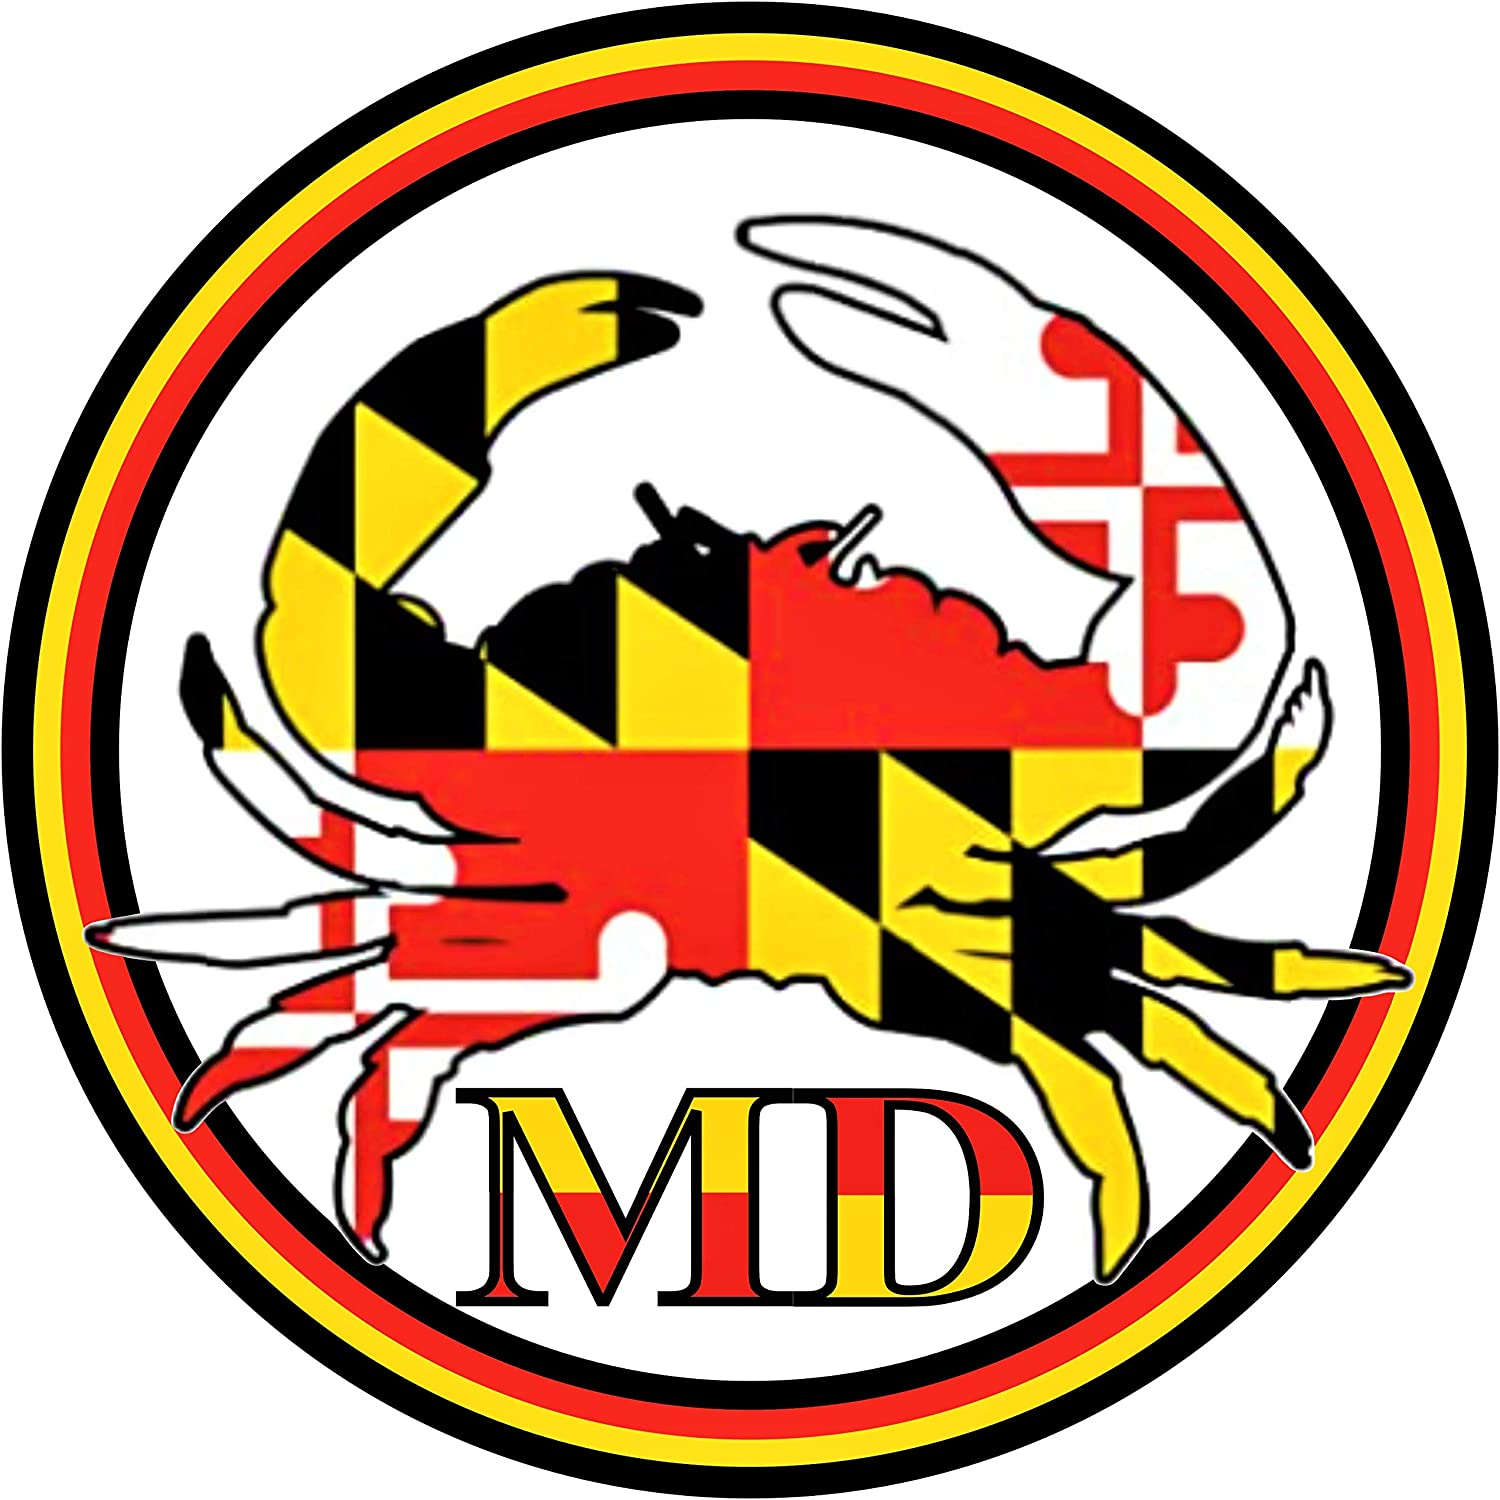 Maryland Crab State Flag Sticker - All Weather Auto Premium Vinyl Auto Decal 3x3 | for Car Bumper Window Hydro-Flask Water Bottle Laptop Computer Mirror + Better Than Magnets - Sticks Anywhere 3 inch